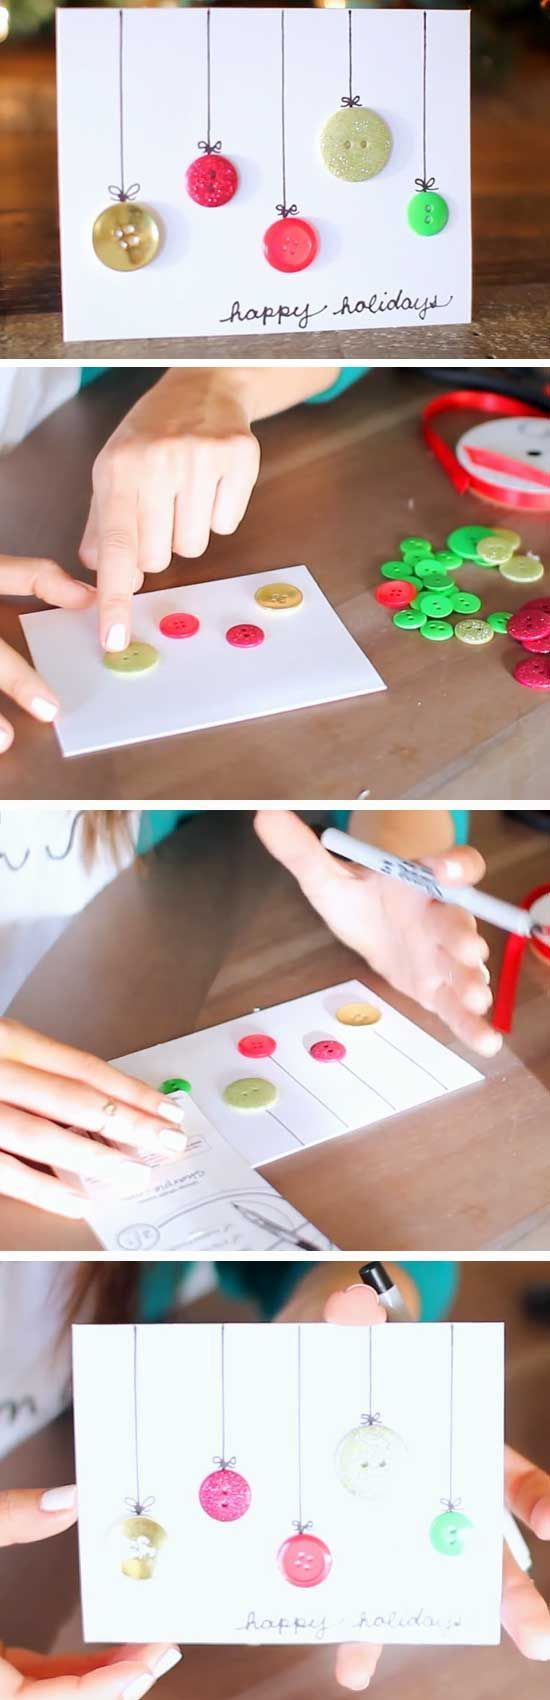 Glistening Baubles | 20 + DIY Christmas Cards for Kids to Make More